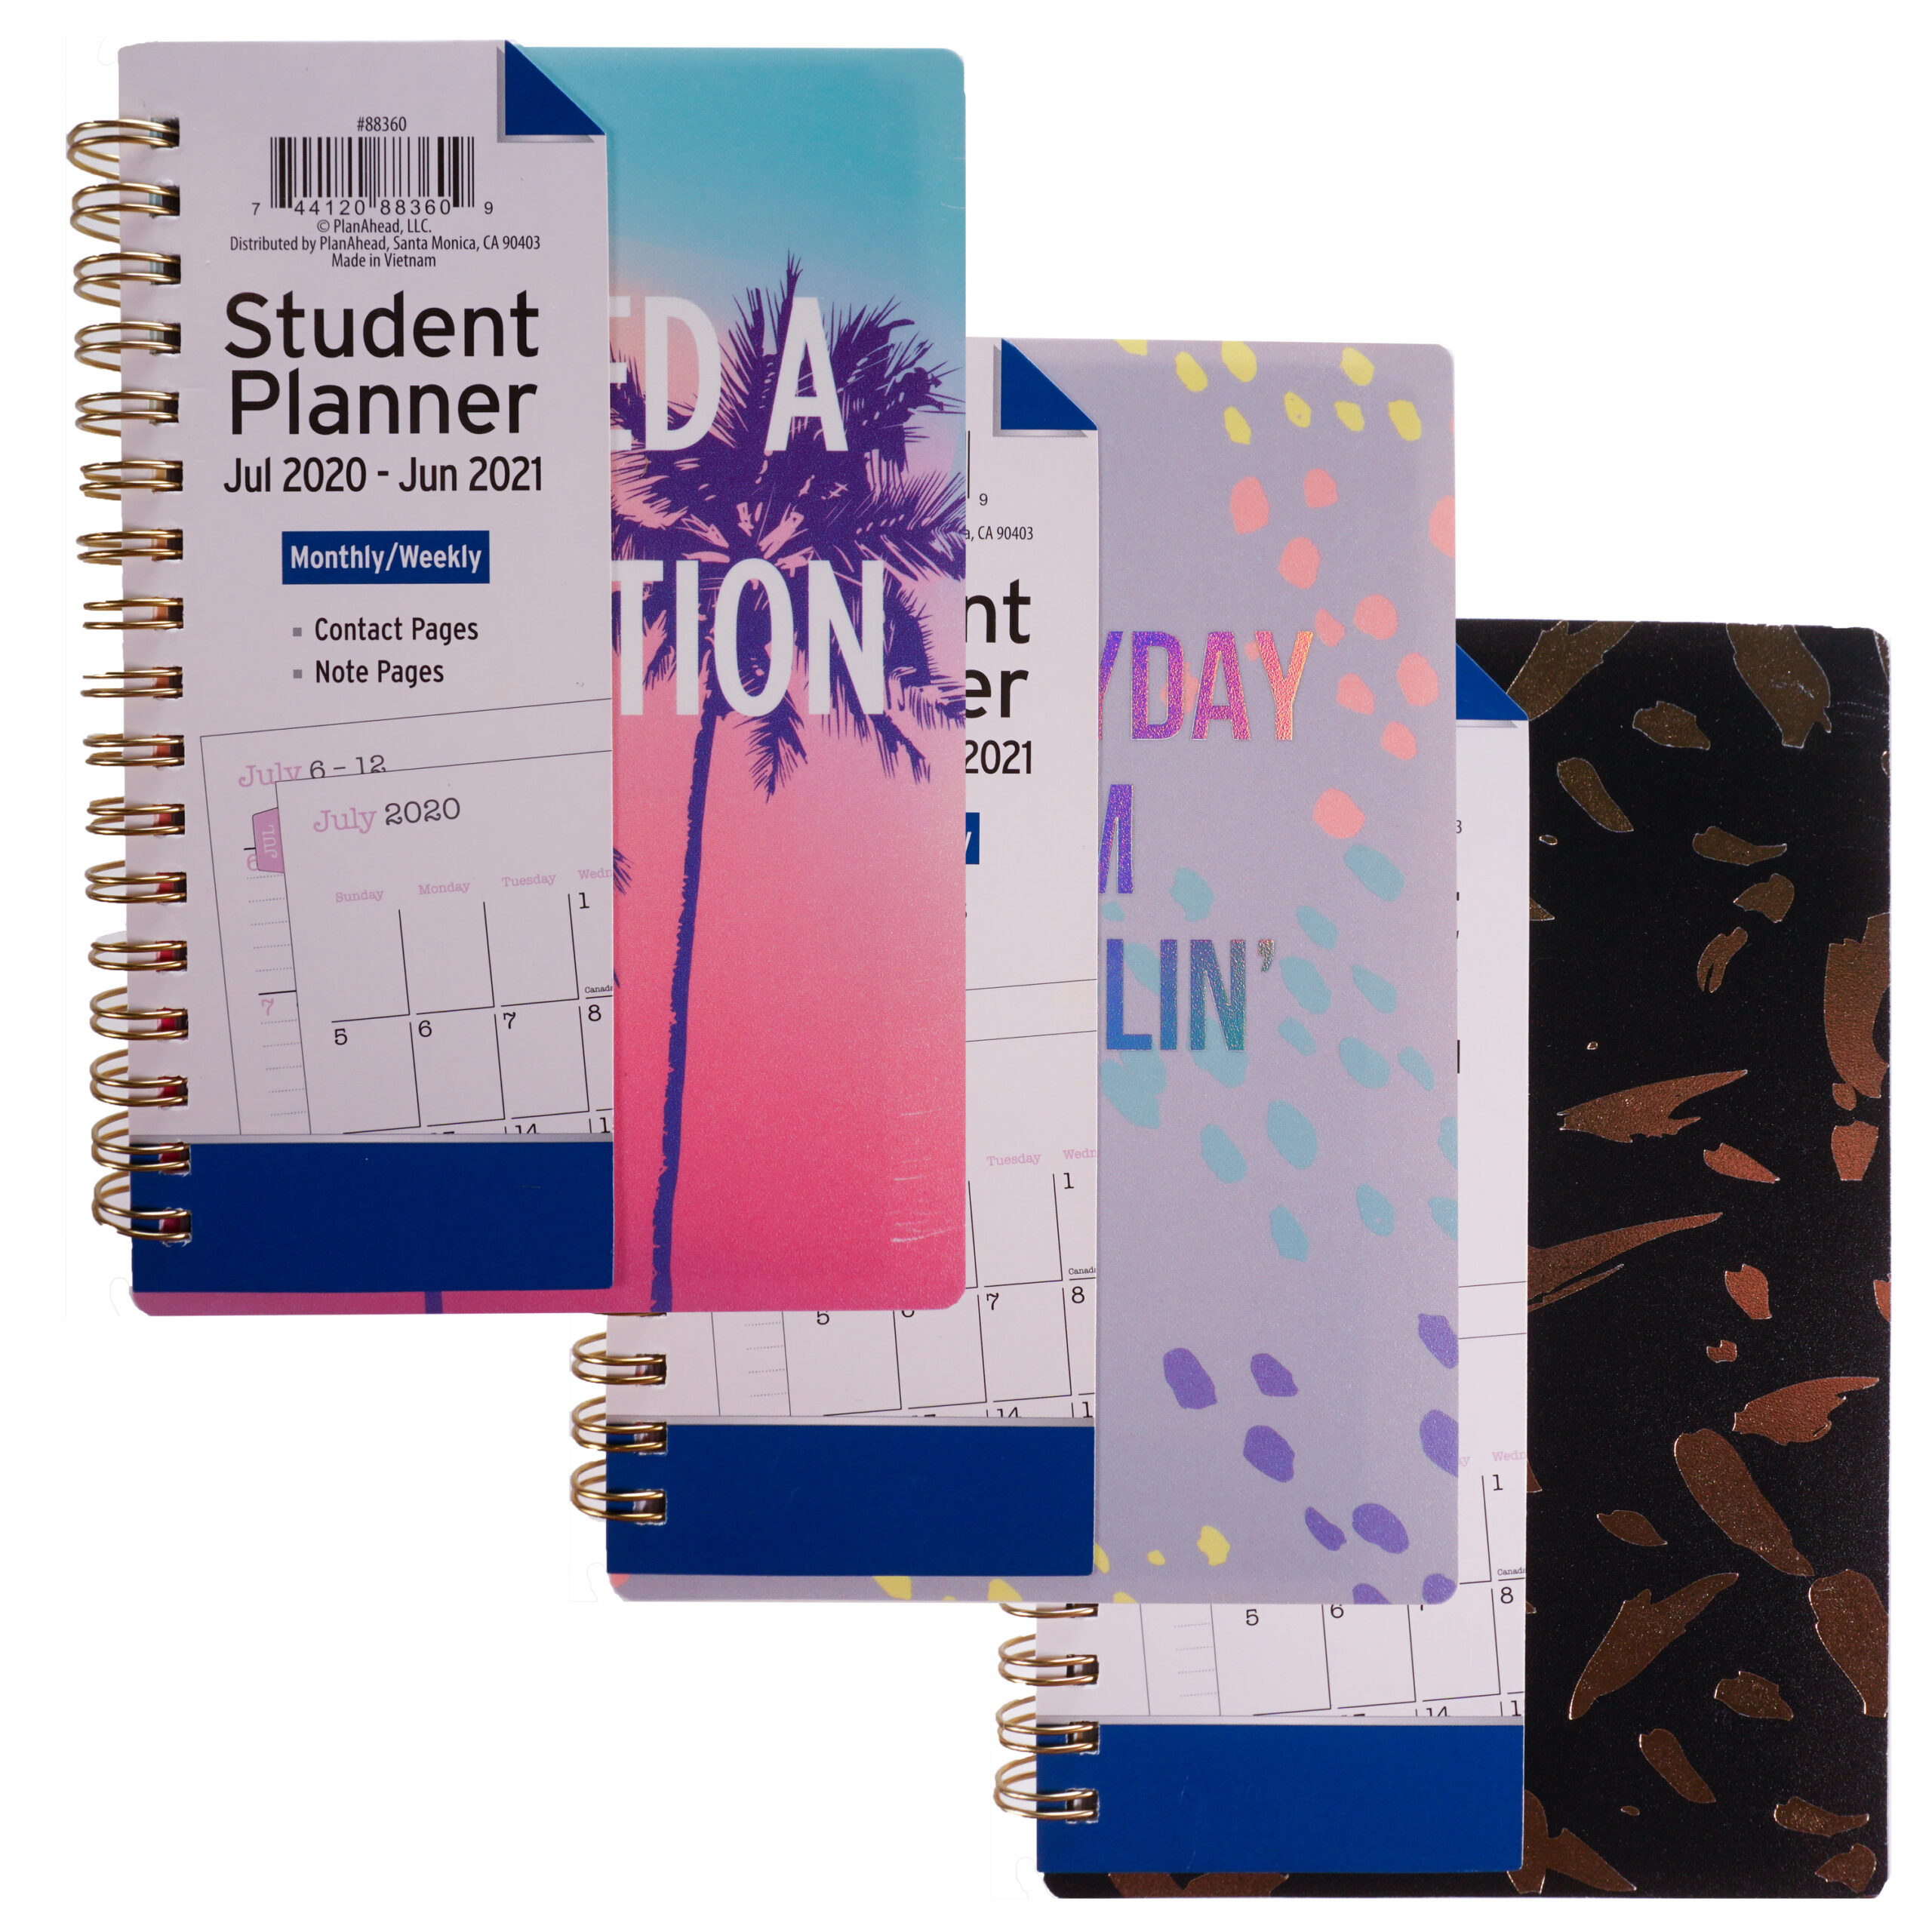 """Planahead Academic Planner, July 2020-June 2021 Monthly/Weekly 4"""" X 6.25"""" -  Walmart intended for Hunting Planner 2021 Monthly"""